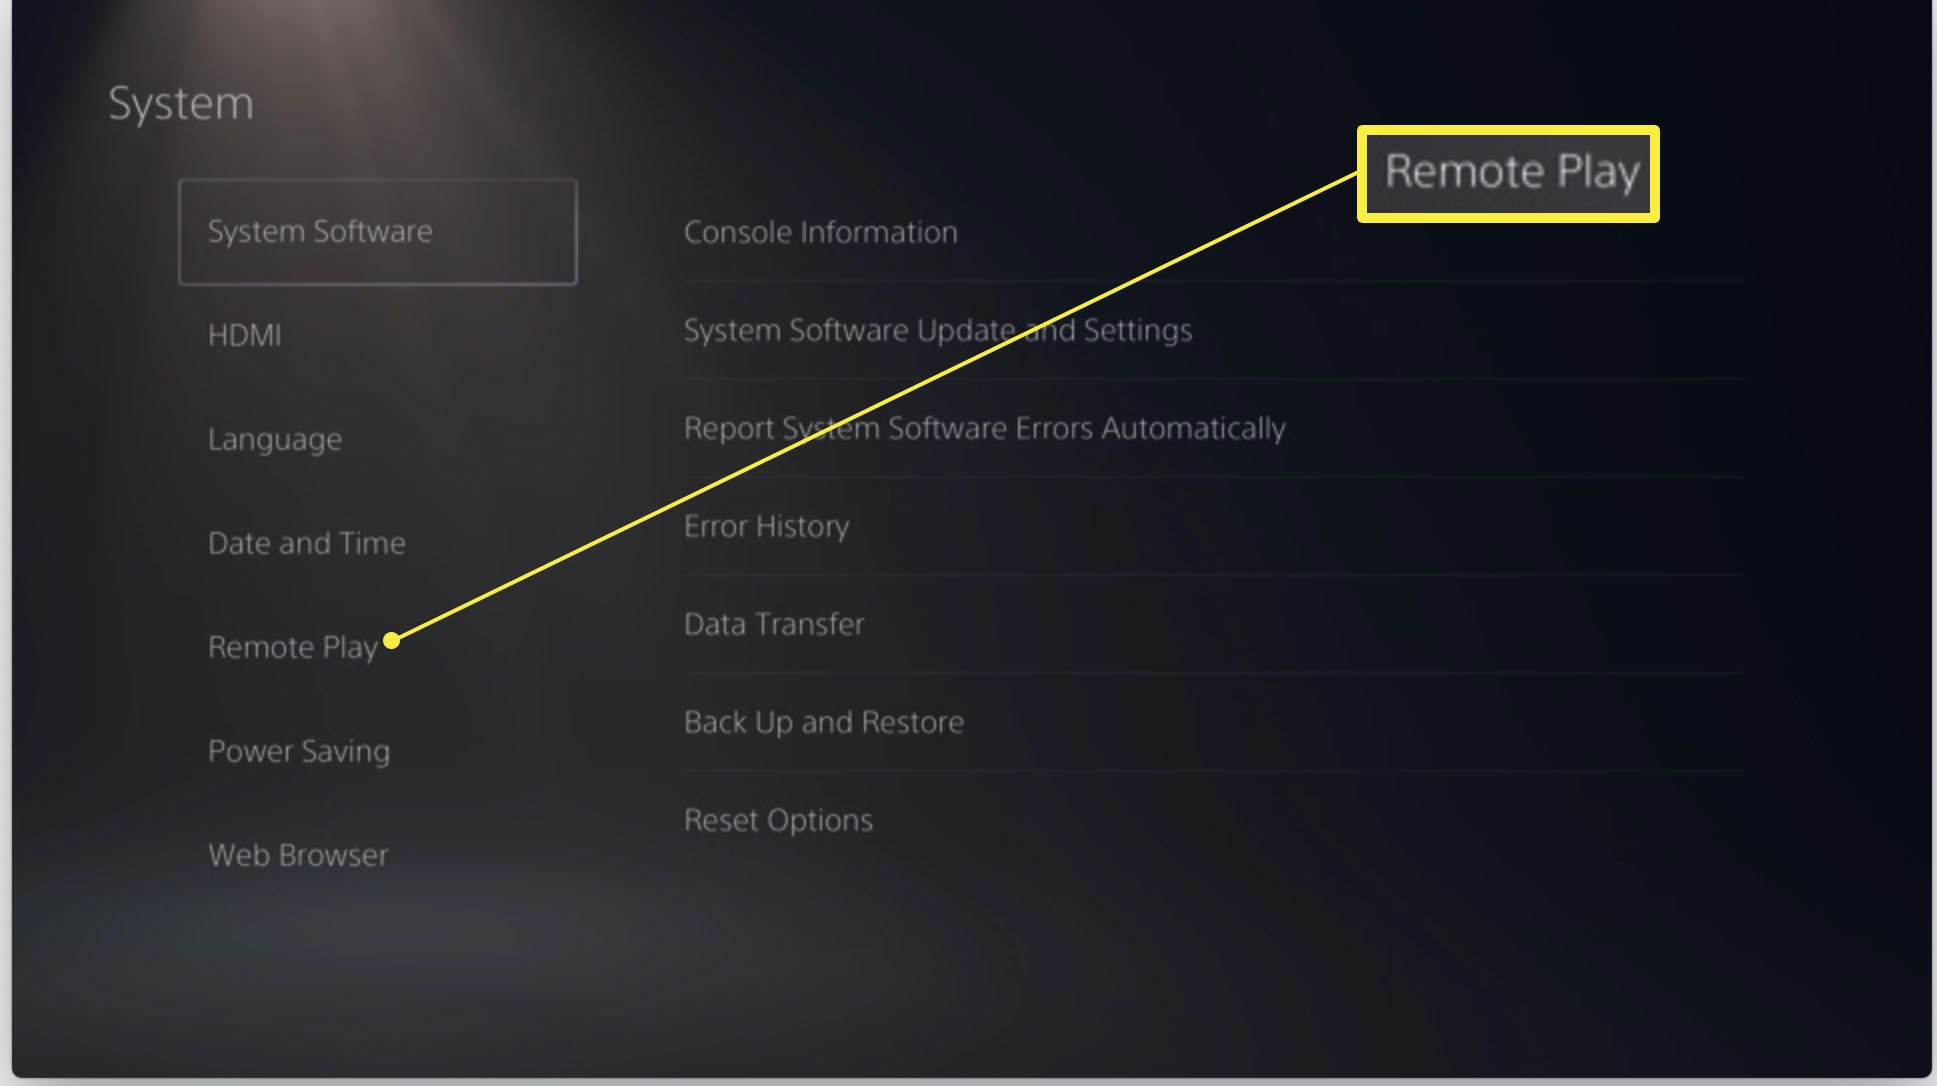 PlayStation 5 System Settings with Remote Play highlighted